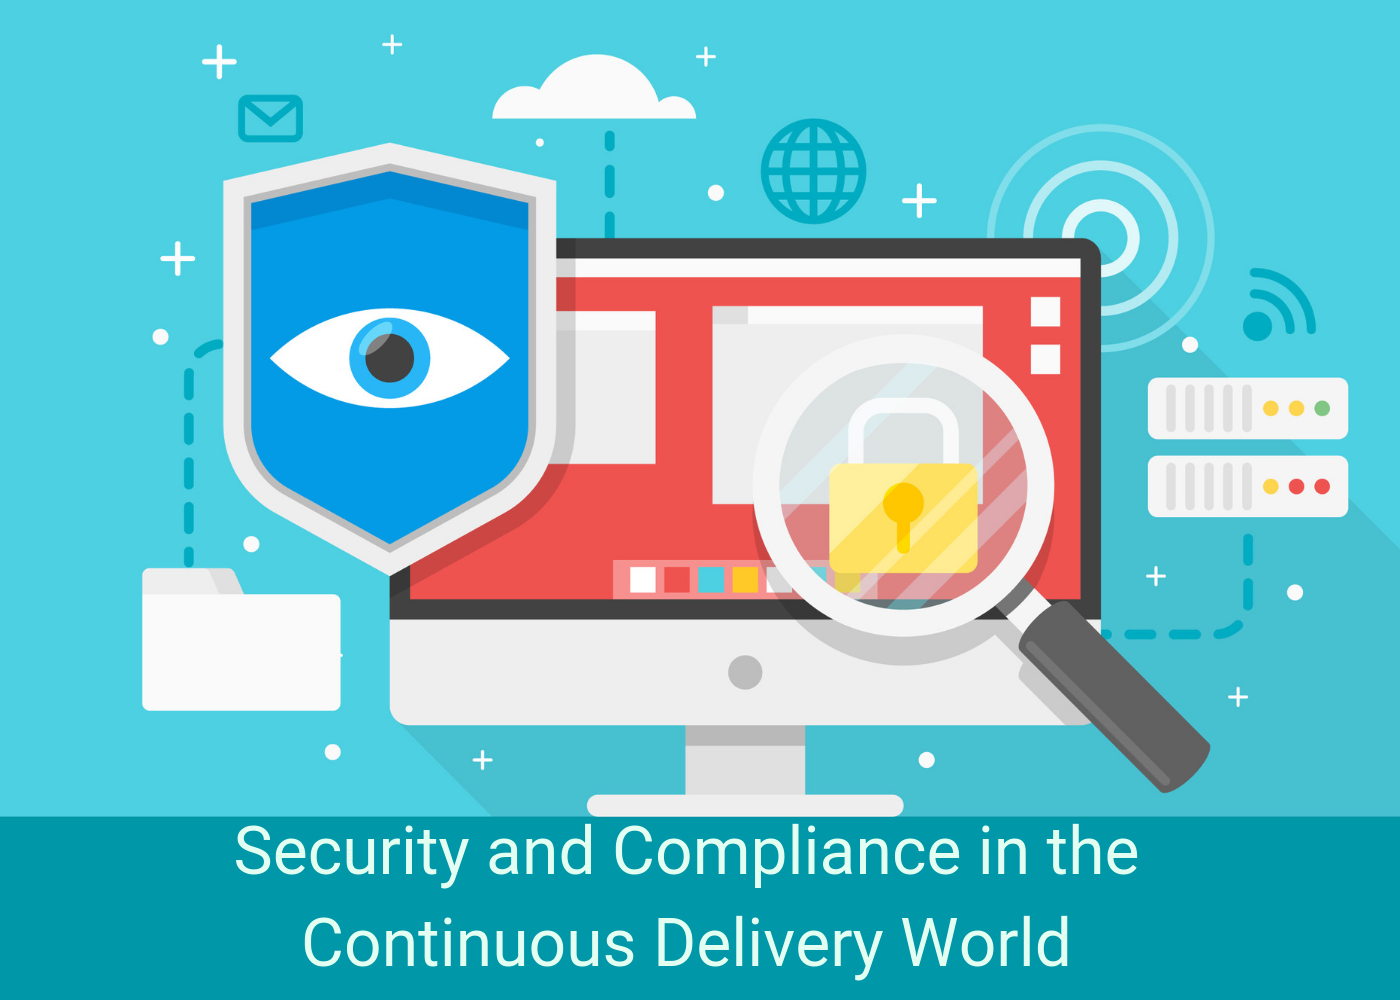 Security and Compliance in the Continuous Delivery World